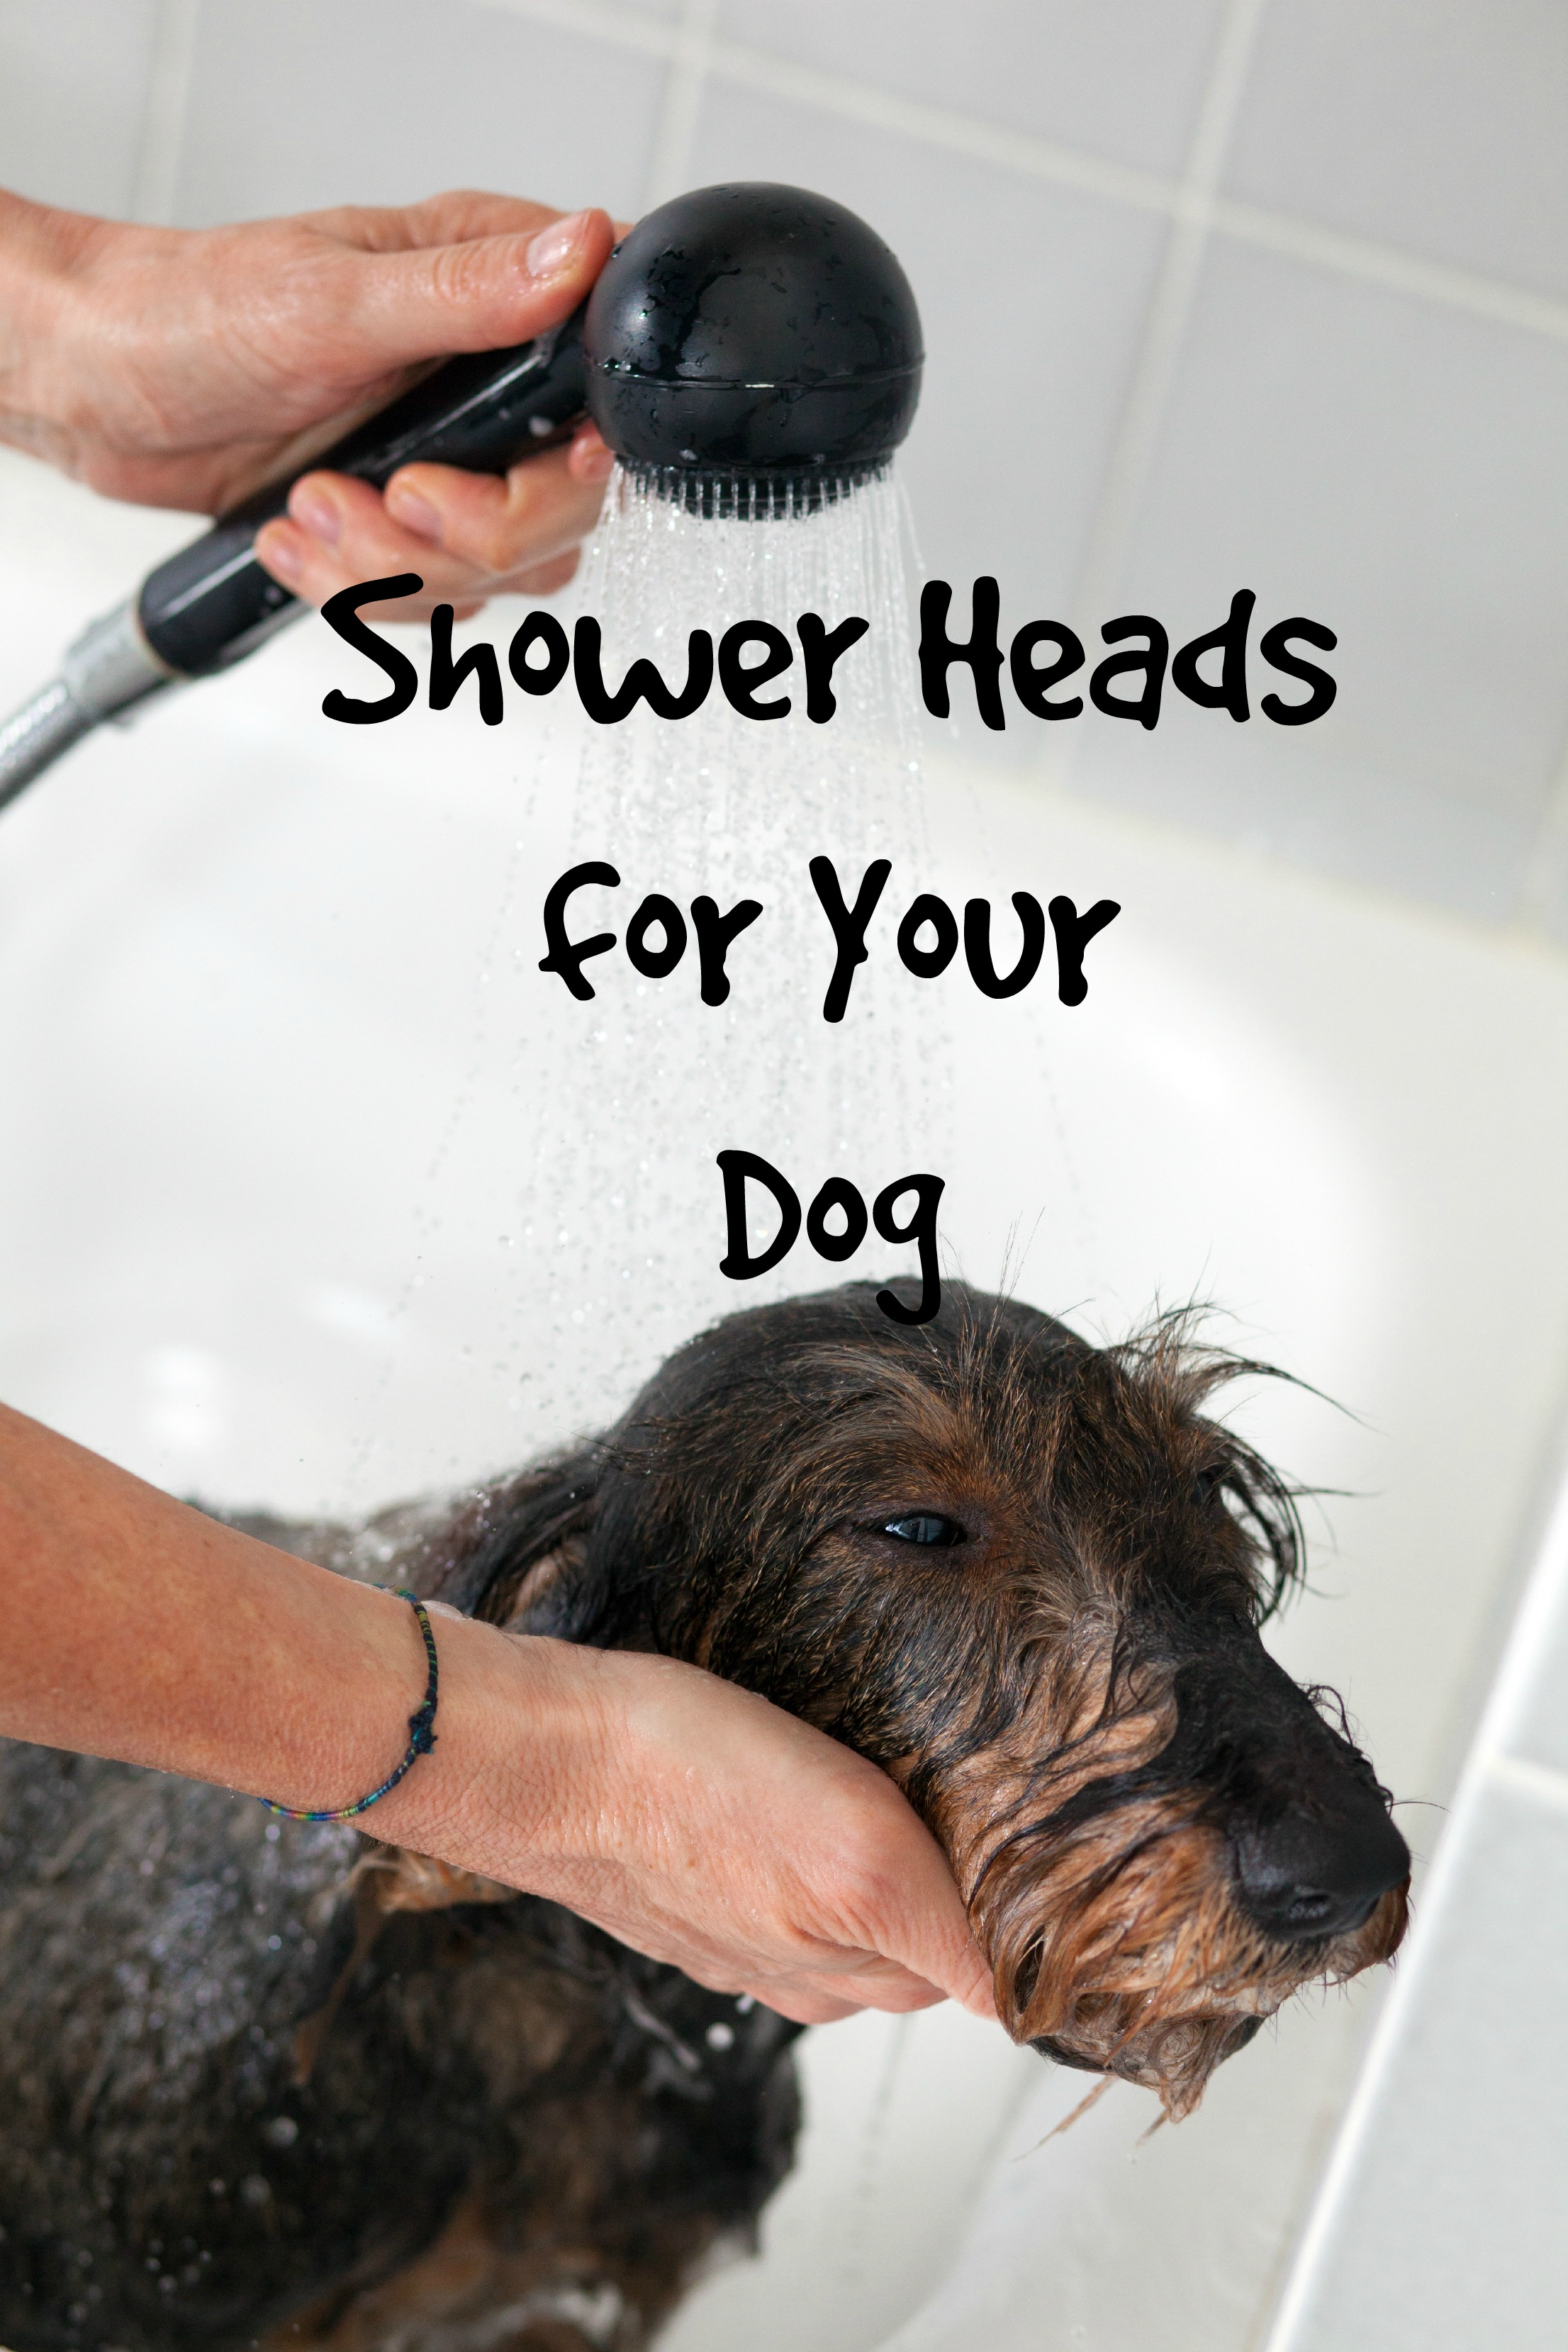 Choosing The Best Shower Heads For Your Dog - Hand held shower faucet attachment